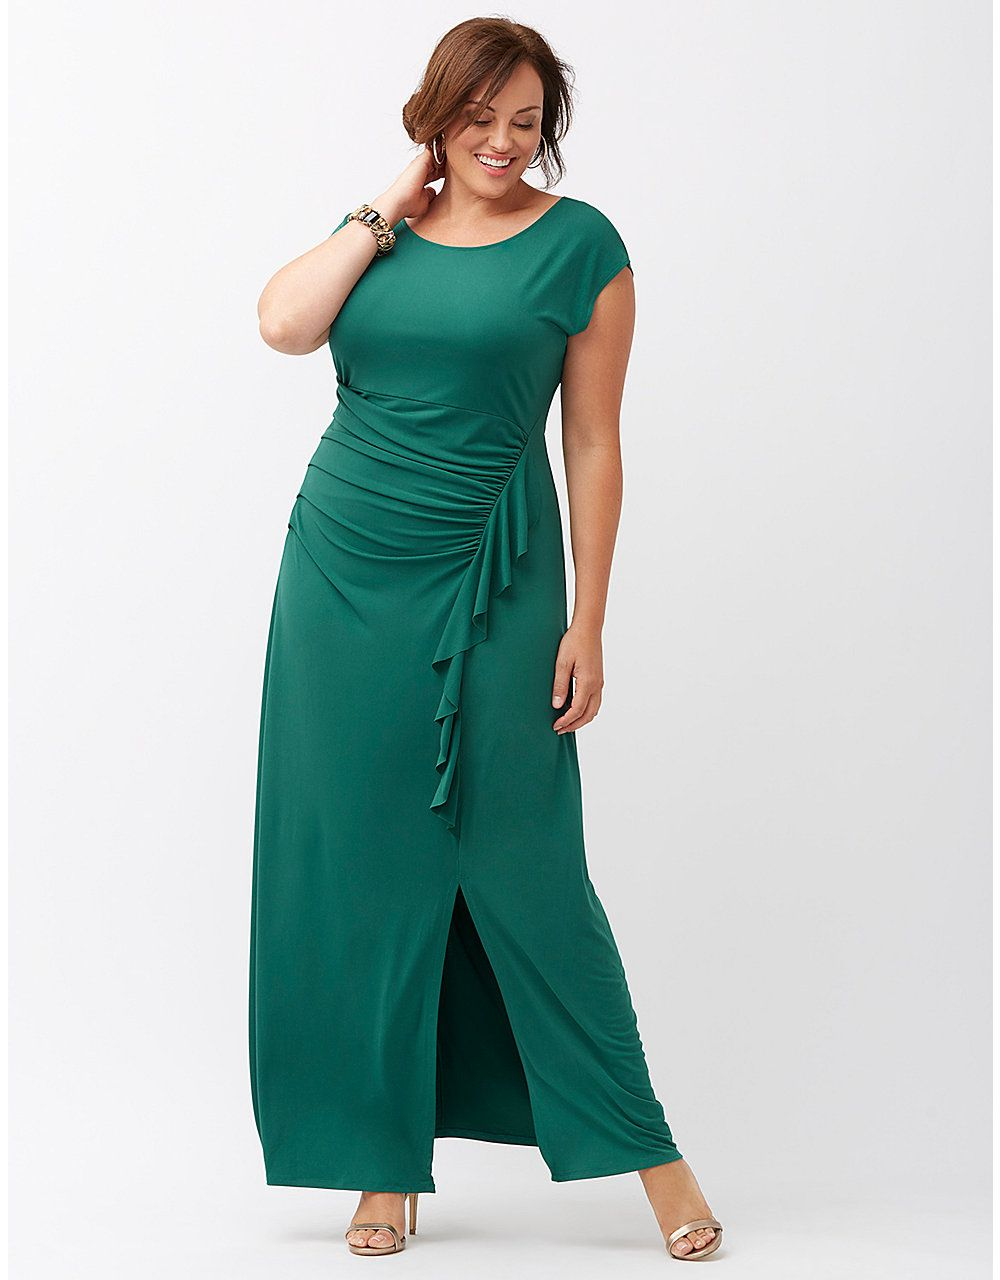 Ruffled maxi dress by Lane Bryant | Lane Bryant | Katering 2 The ...